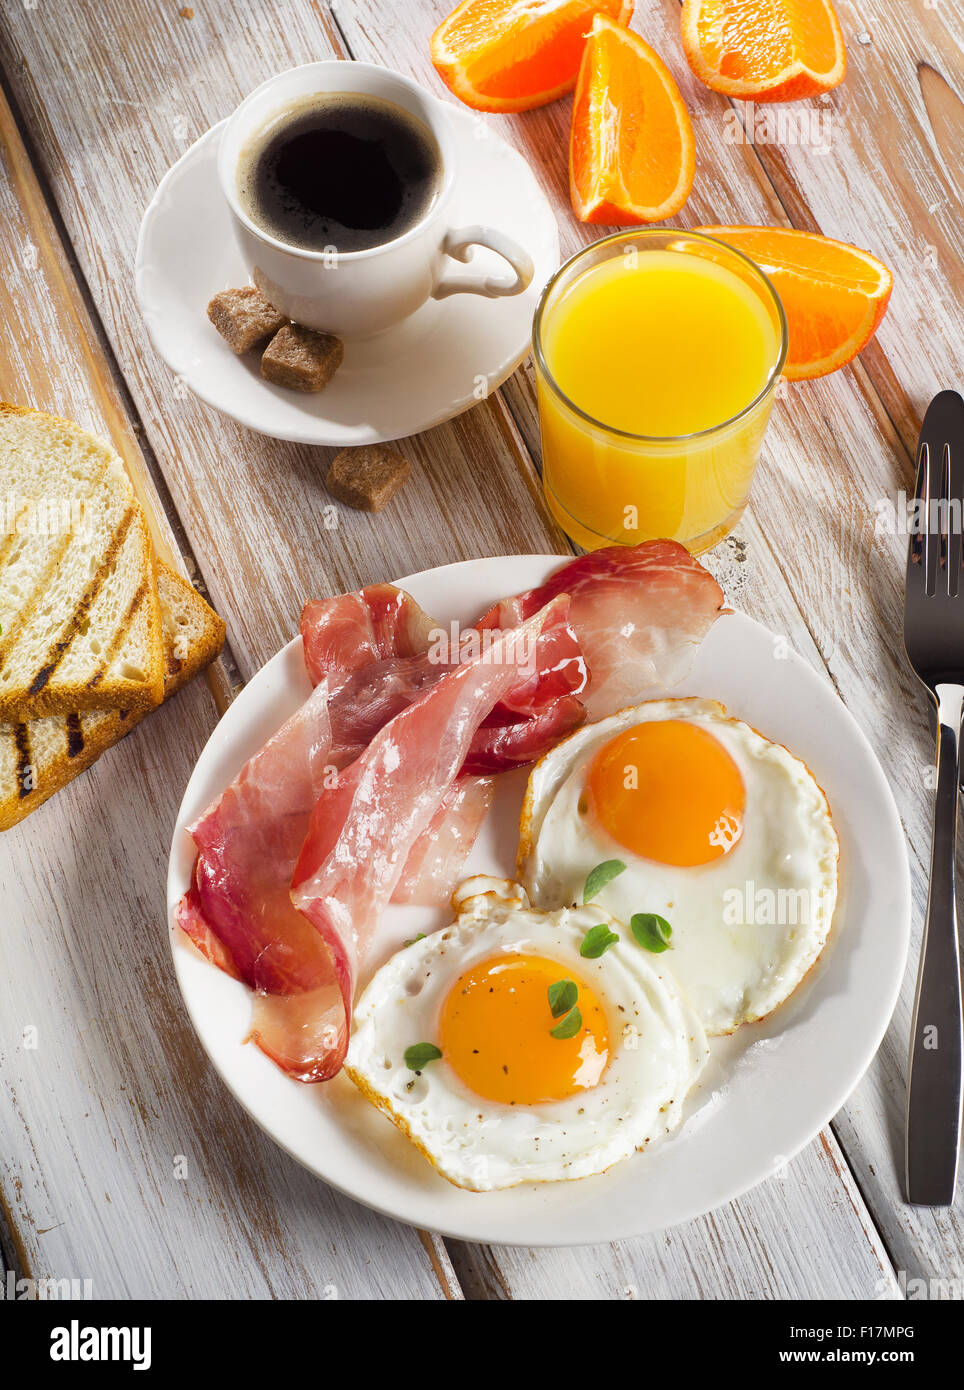 Eggs Bacon Orange Juice And Coffee For Healthy Breakfast Stock